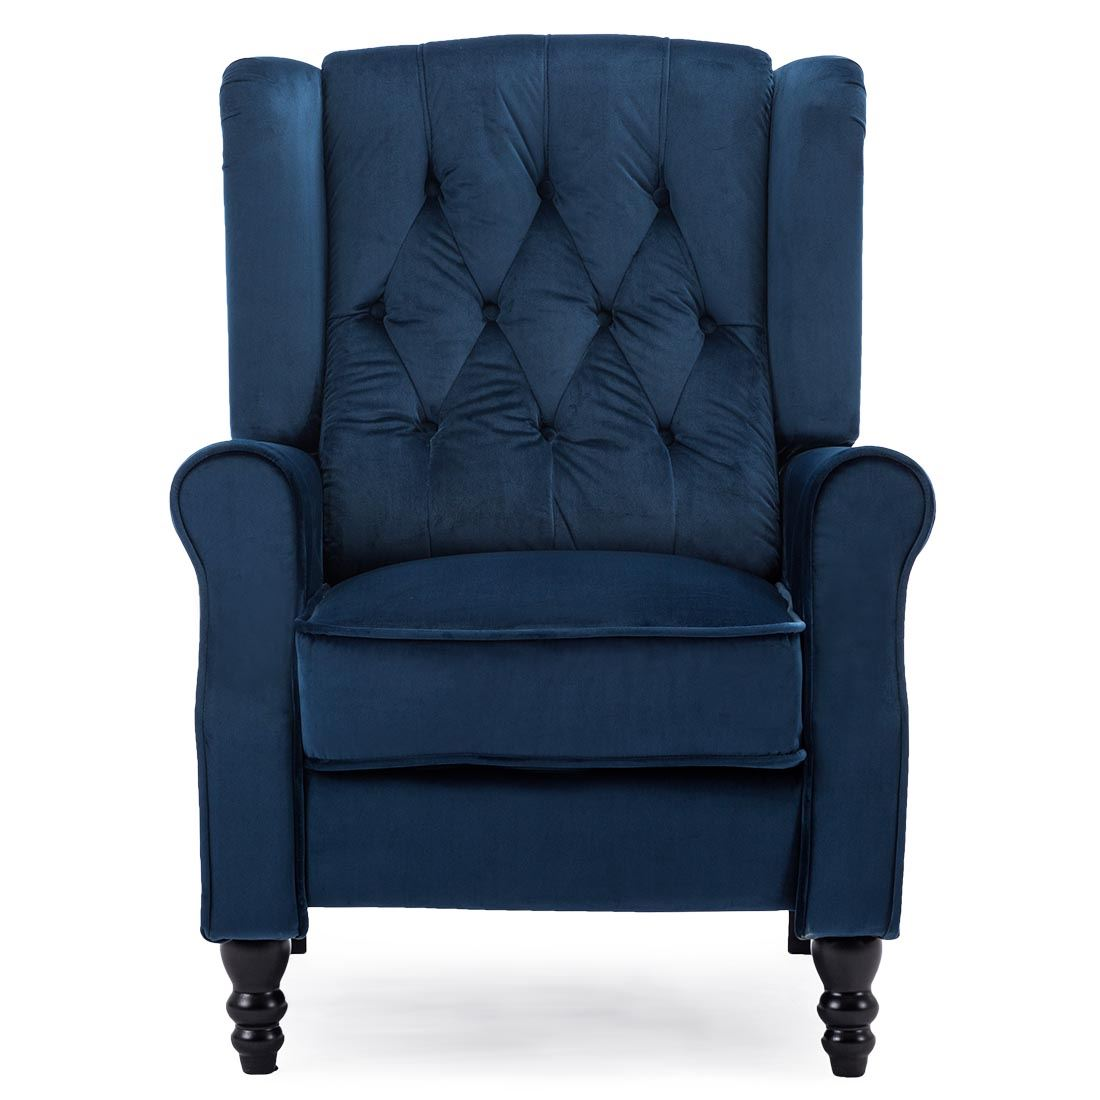 Althorpe Velvet Recliner Armchair in Blue | INTOTO7 Menswear